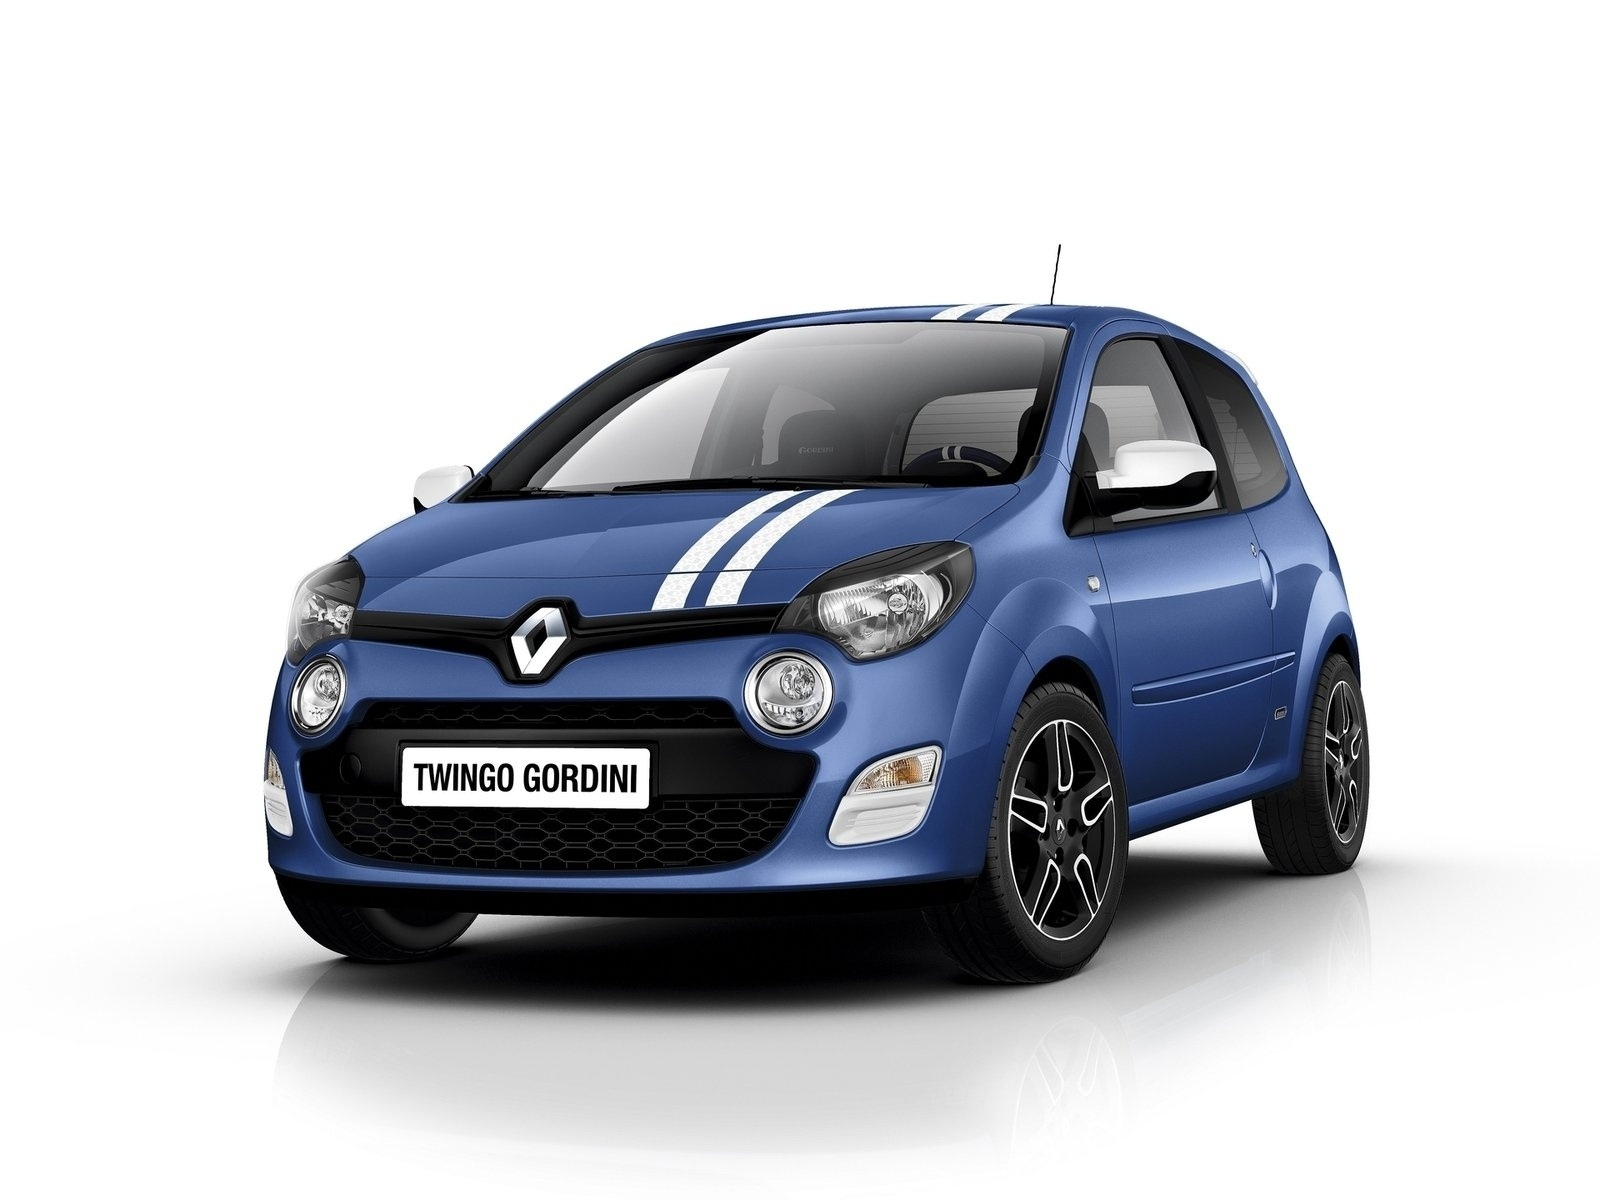 renault twingo rs gordini renault wallpaper 26793105. Black Bedroom Furniture Sets. Home Design Ideas